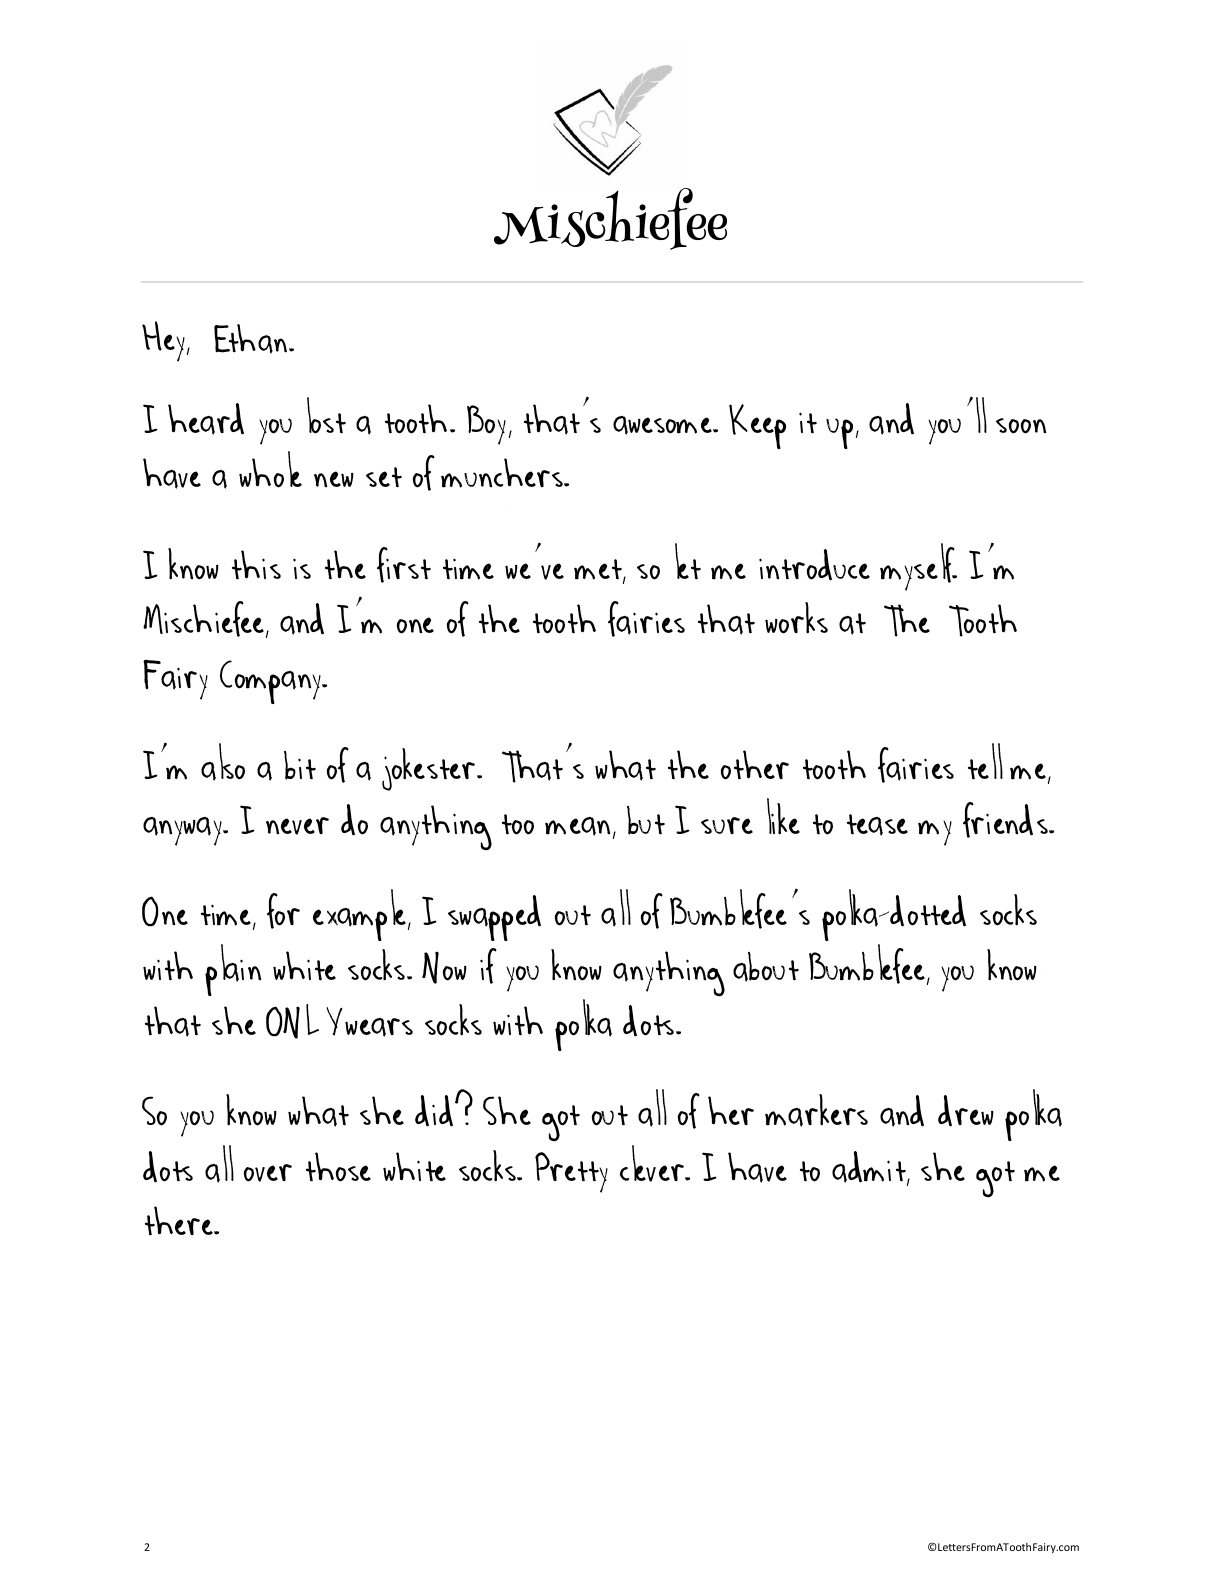 Tooth fairy letter from Tooth Fairy Mischiefee, explaining why he hid your child's ToothLoot and how to find it